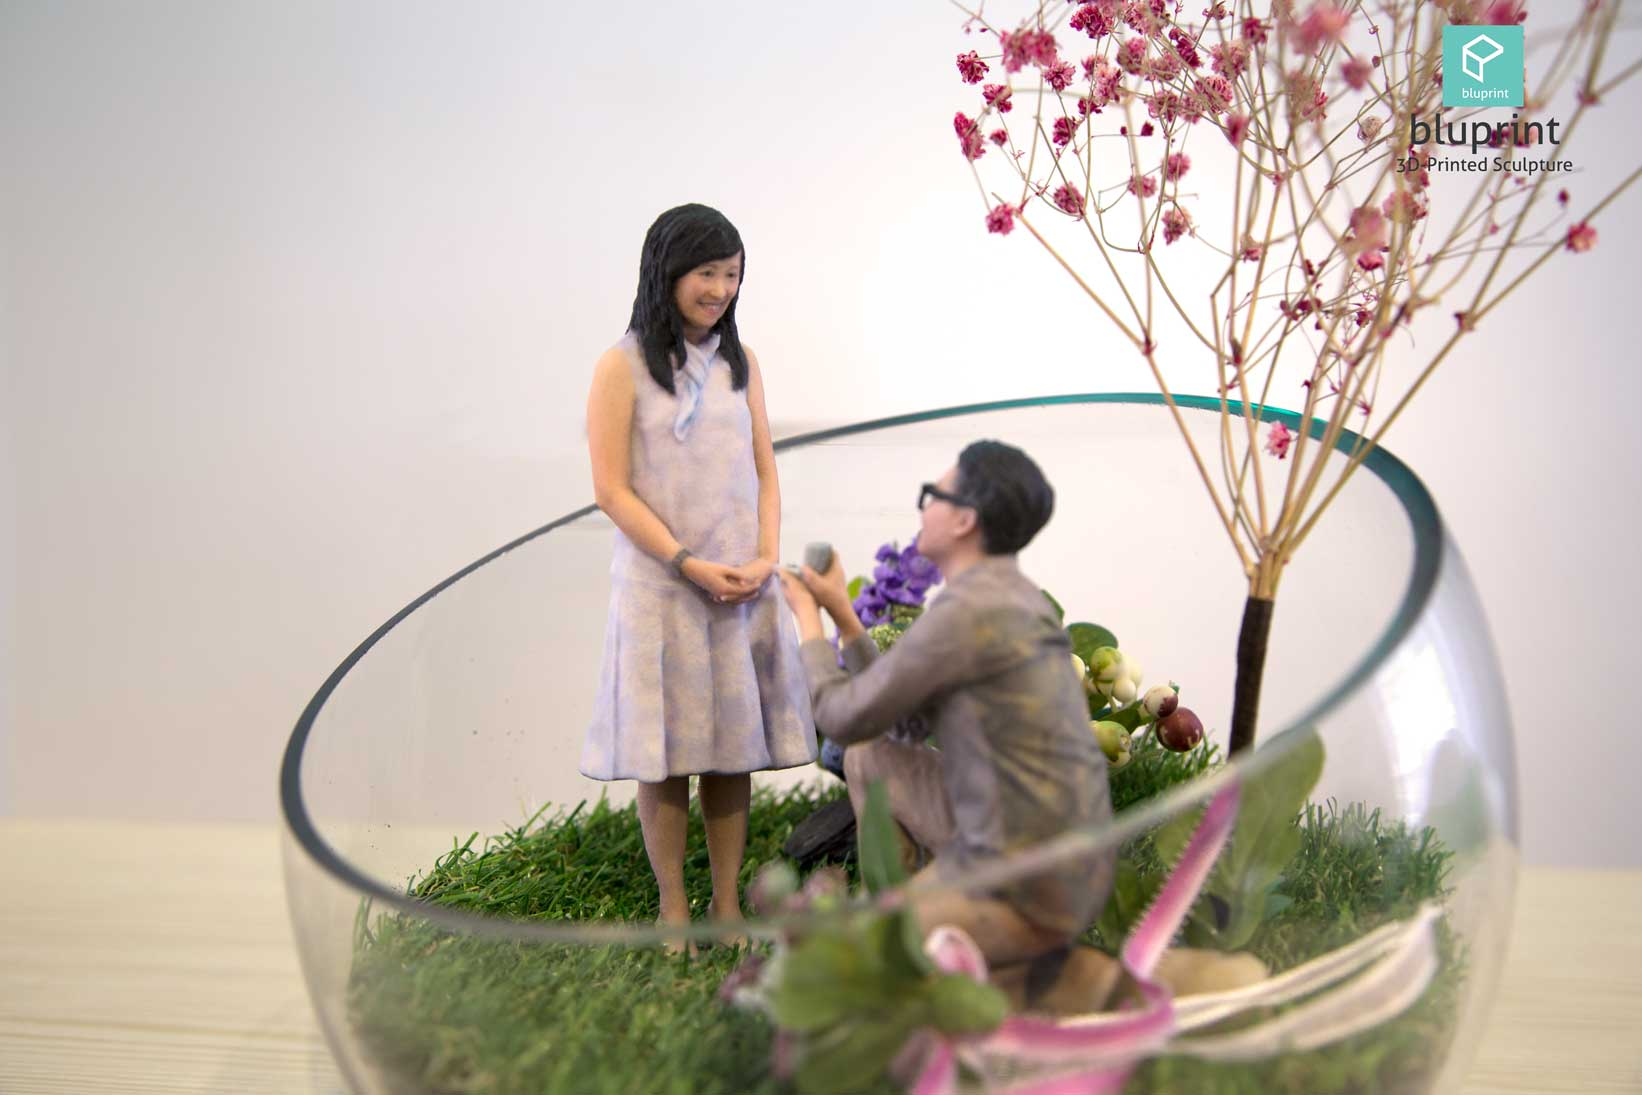 Bluprint 3D Figure Sculpture Hong Kong Couple Proposal Terrarium Girl